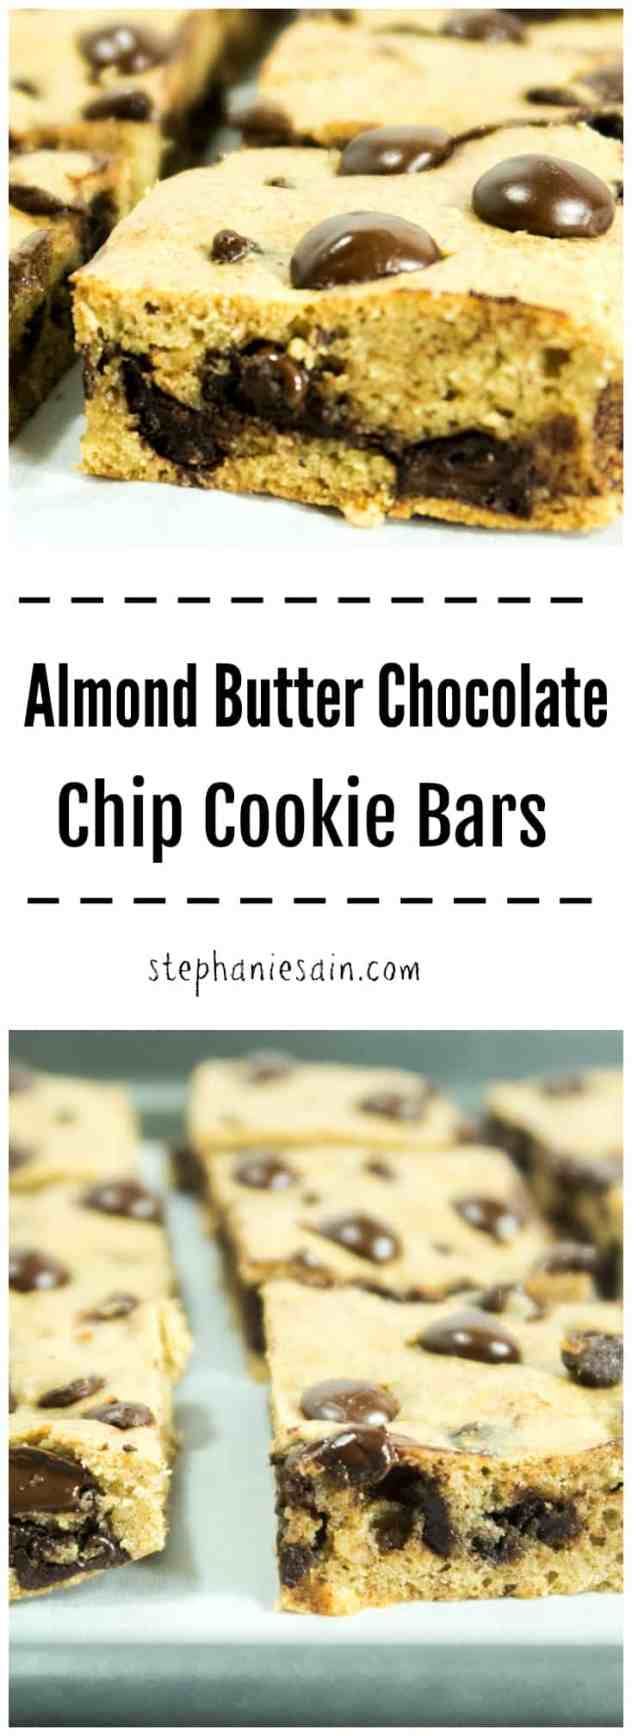 Almond Butter Chocolate Chip Cookie Bars are a healthier cookie bar and contain no added refined sugars, gluten free, and vegetarian. Great for breakfast, snack or anytime you're craving chocolate.